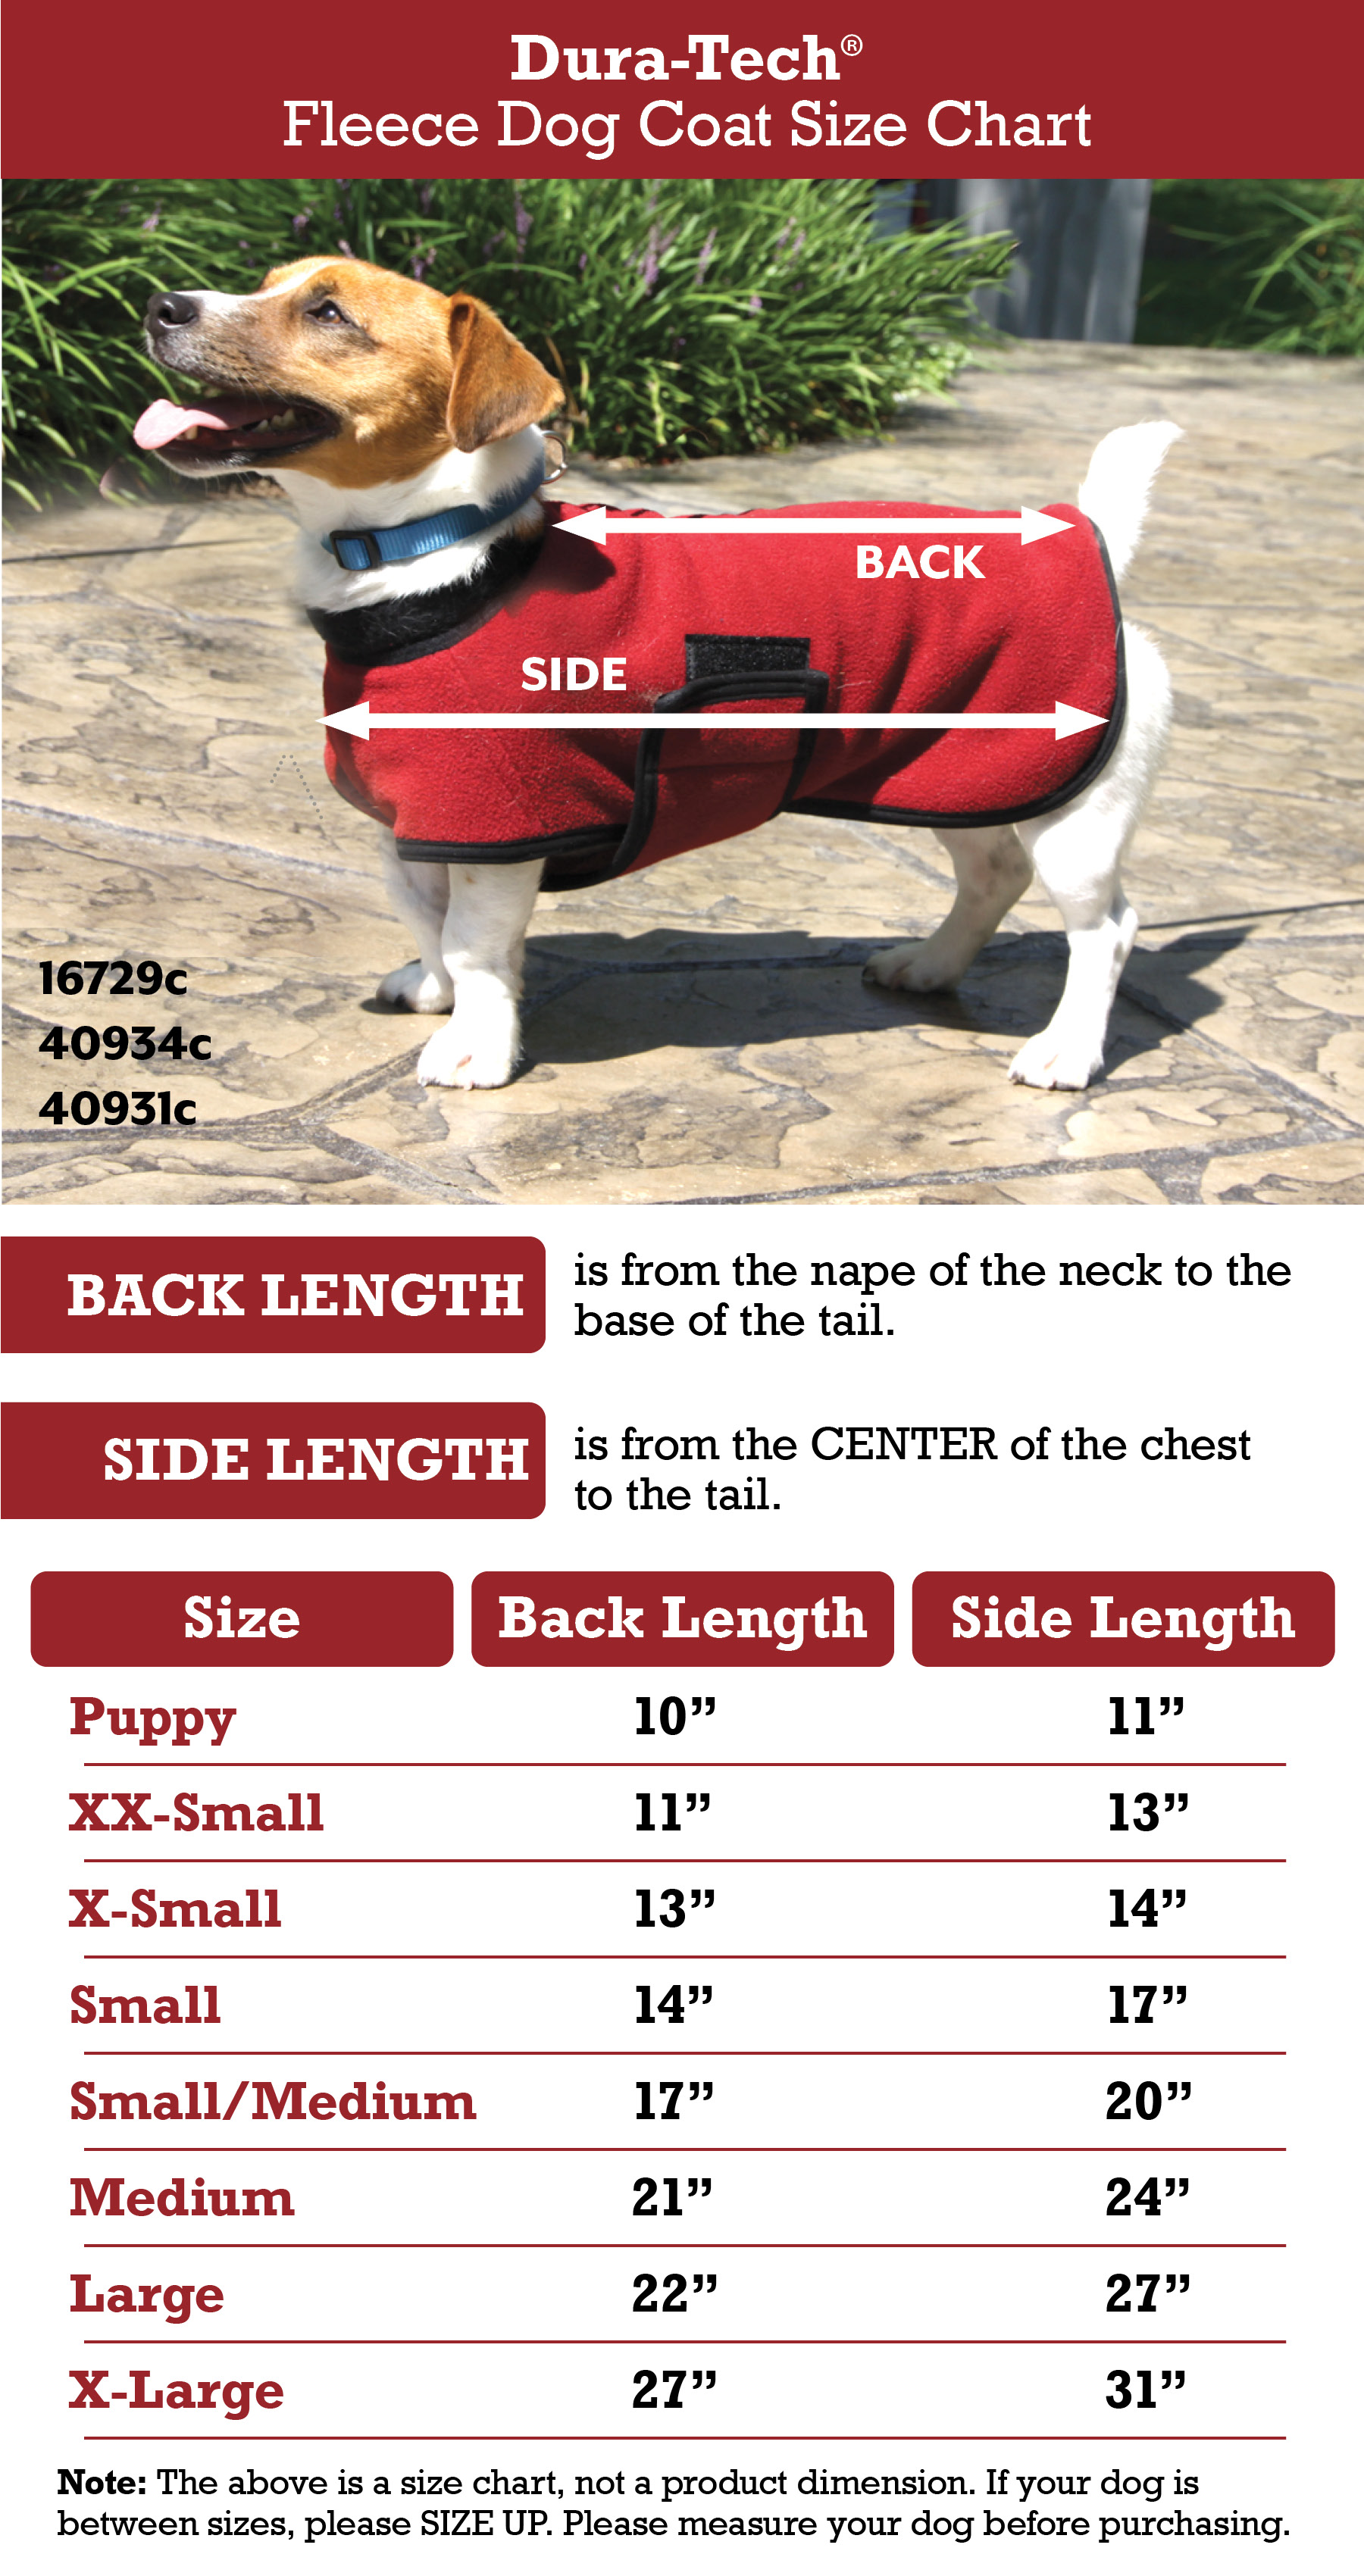 Dura-Tech® Fleece Dog Coat Size Chart